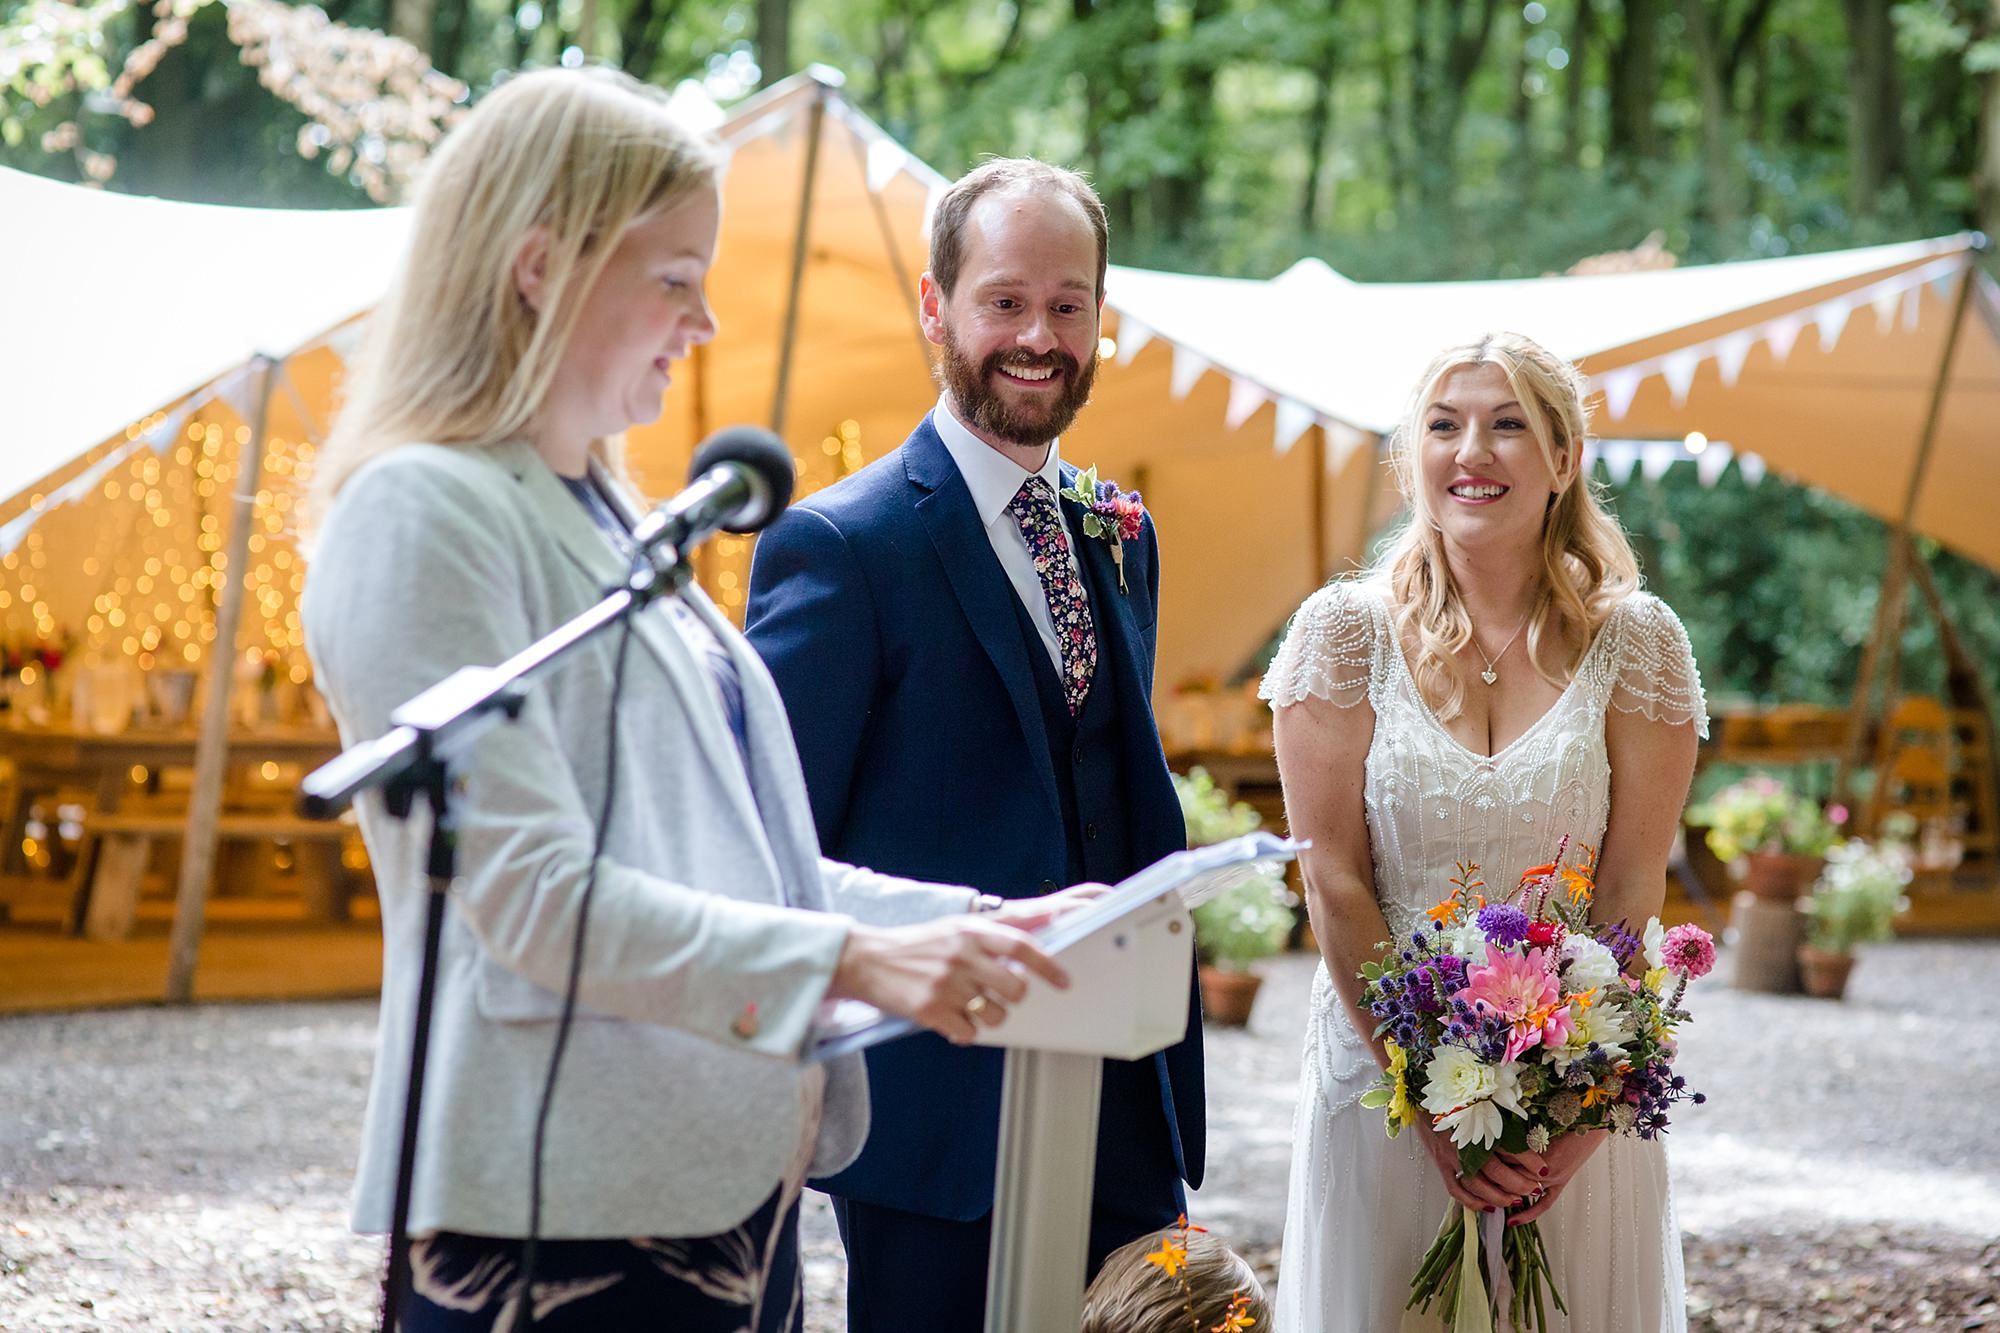 Woodland Weddings Tring bride and groom during ceremony